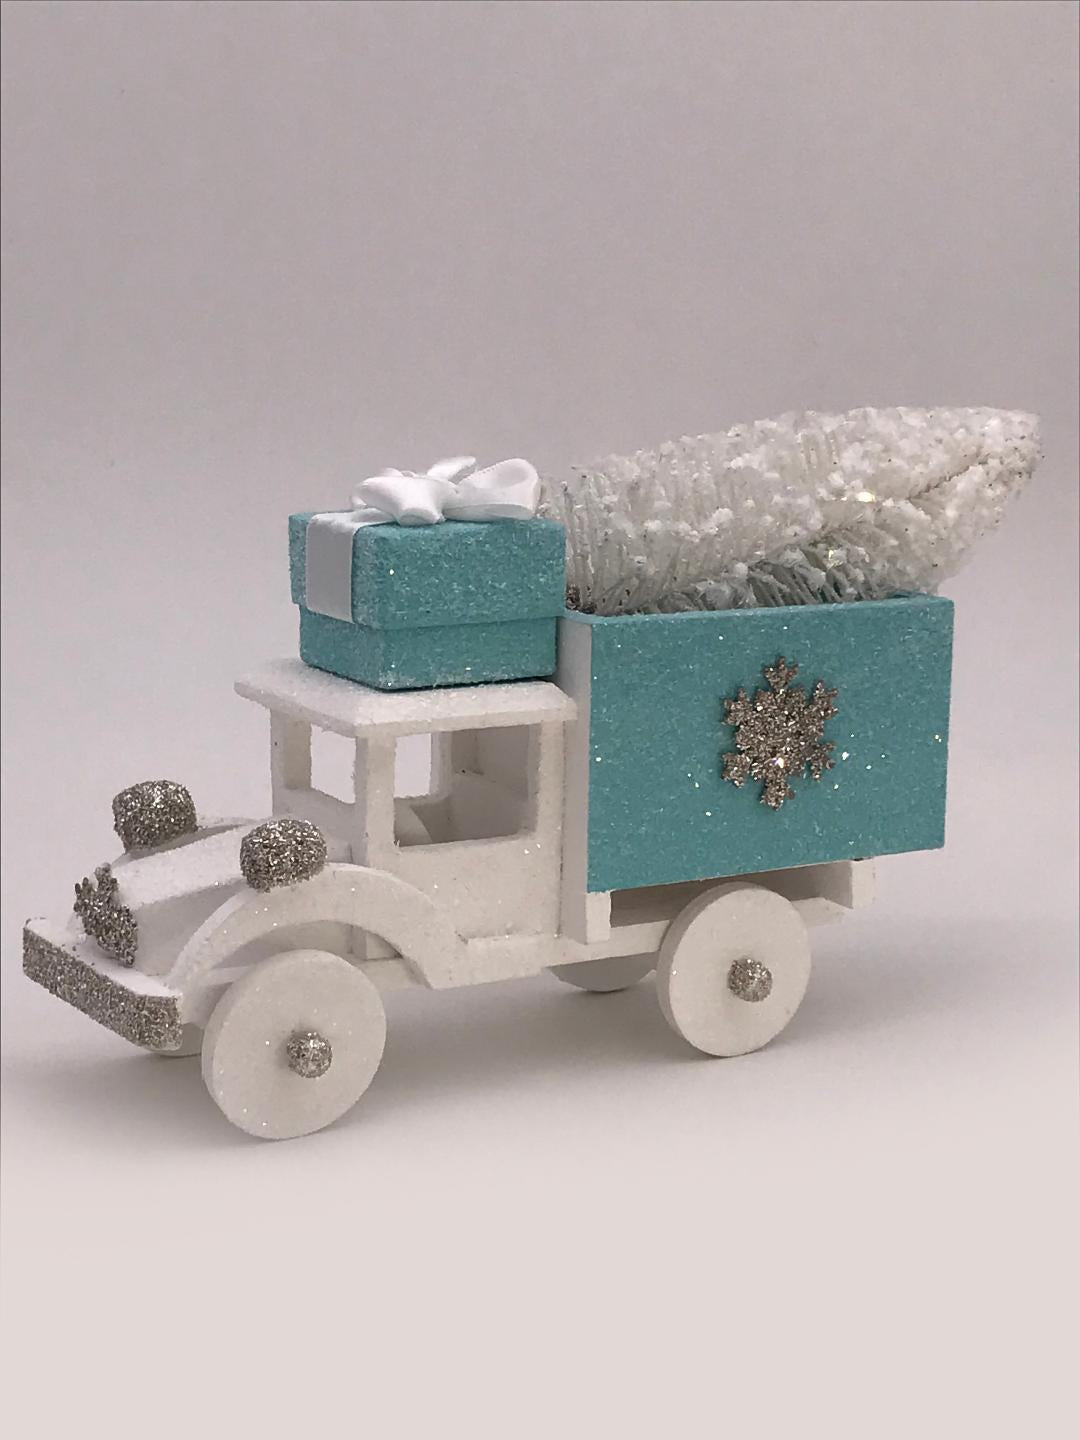 Haul Truck - Turquoise and White